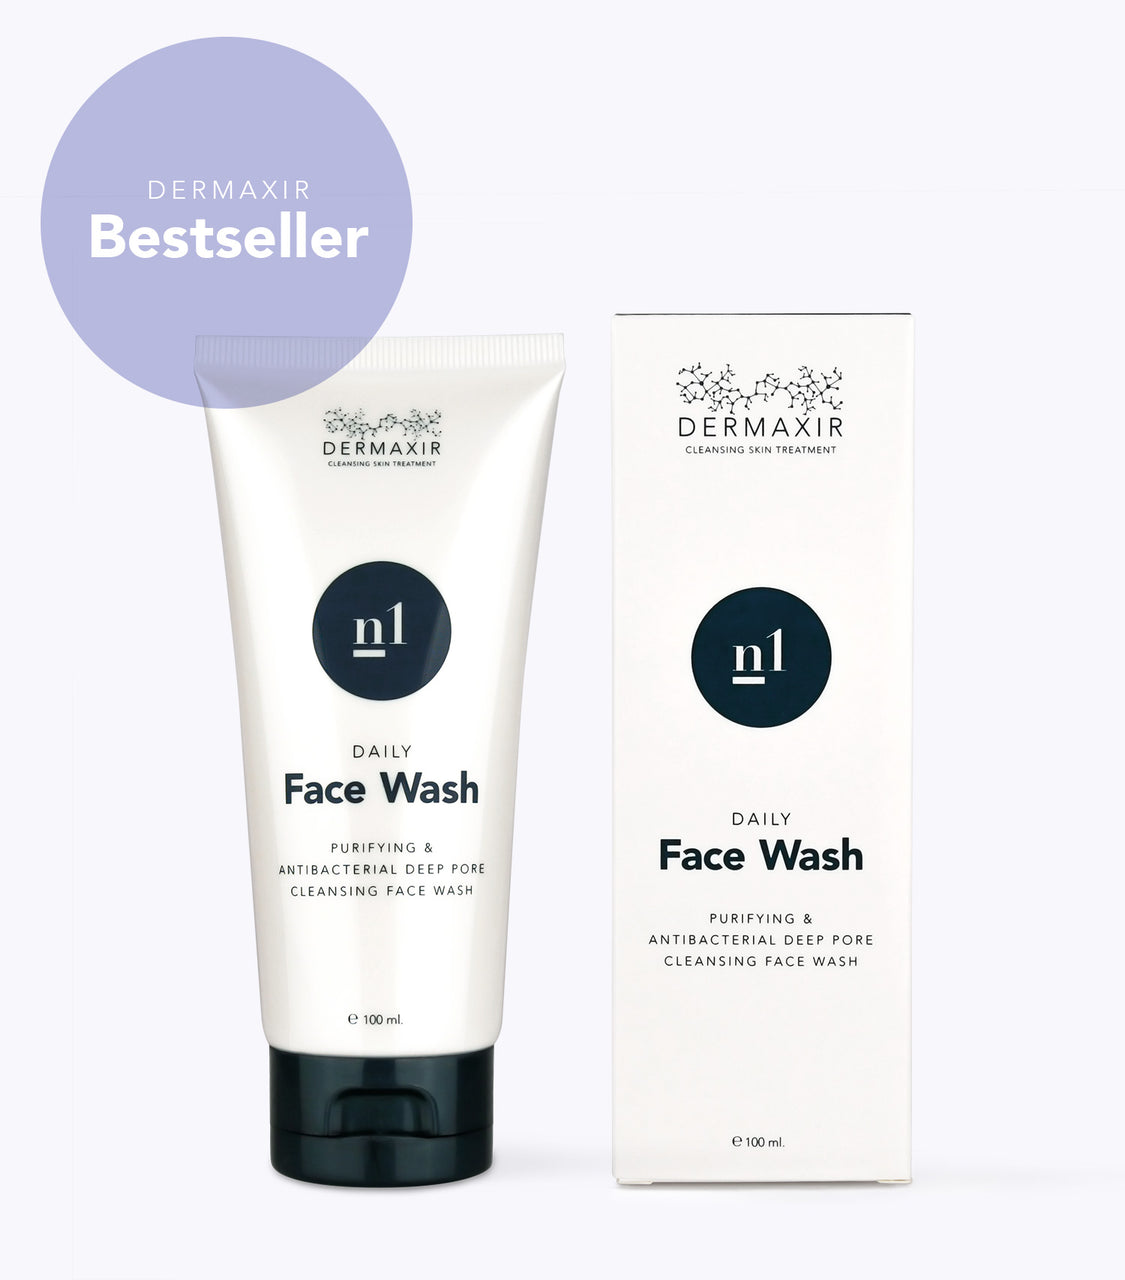 n1 Daily Face Wash - dermaxir